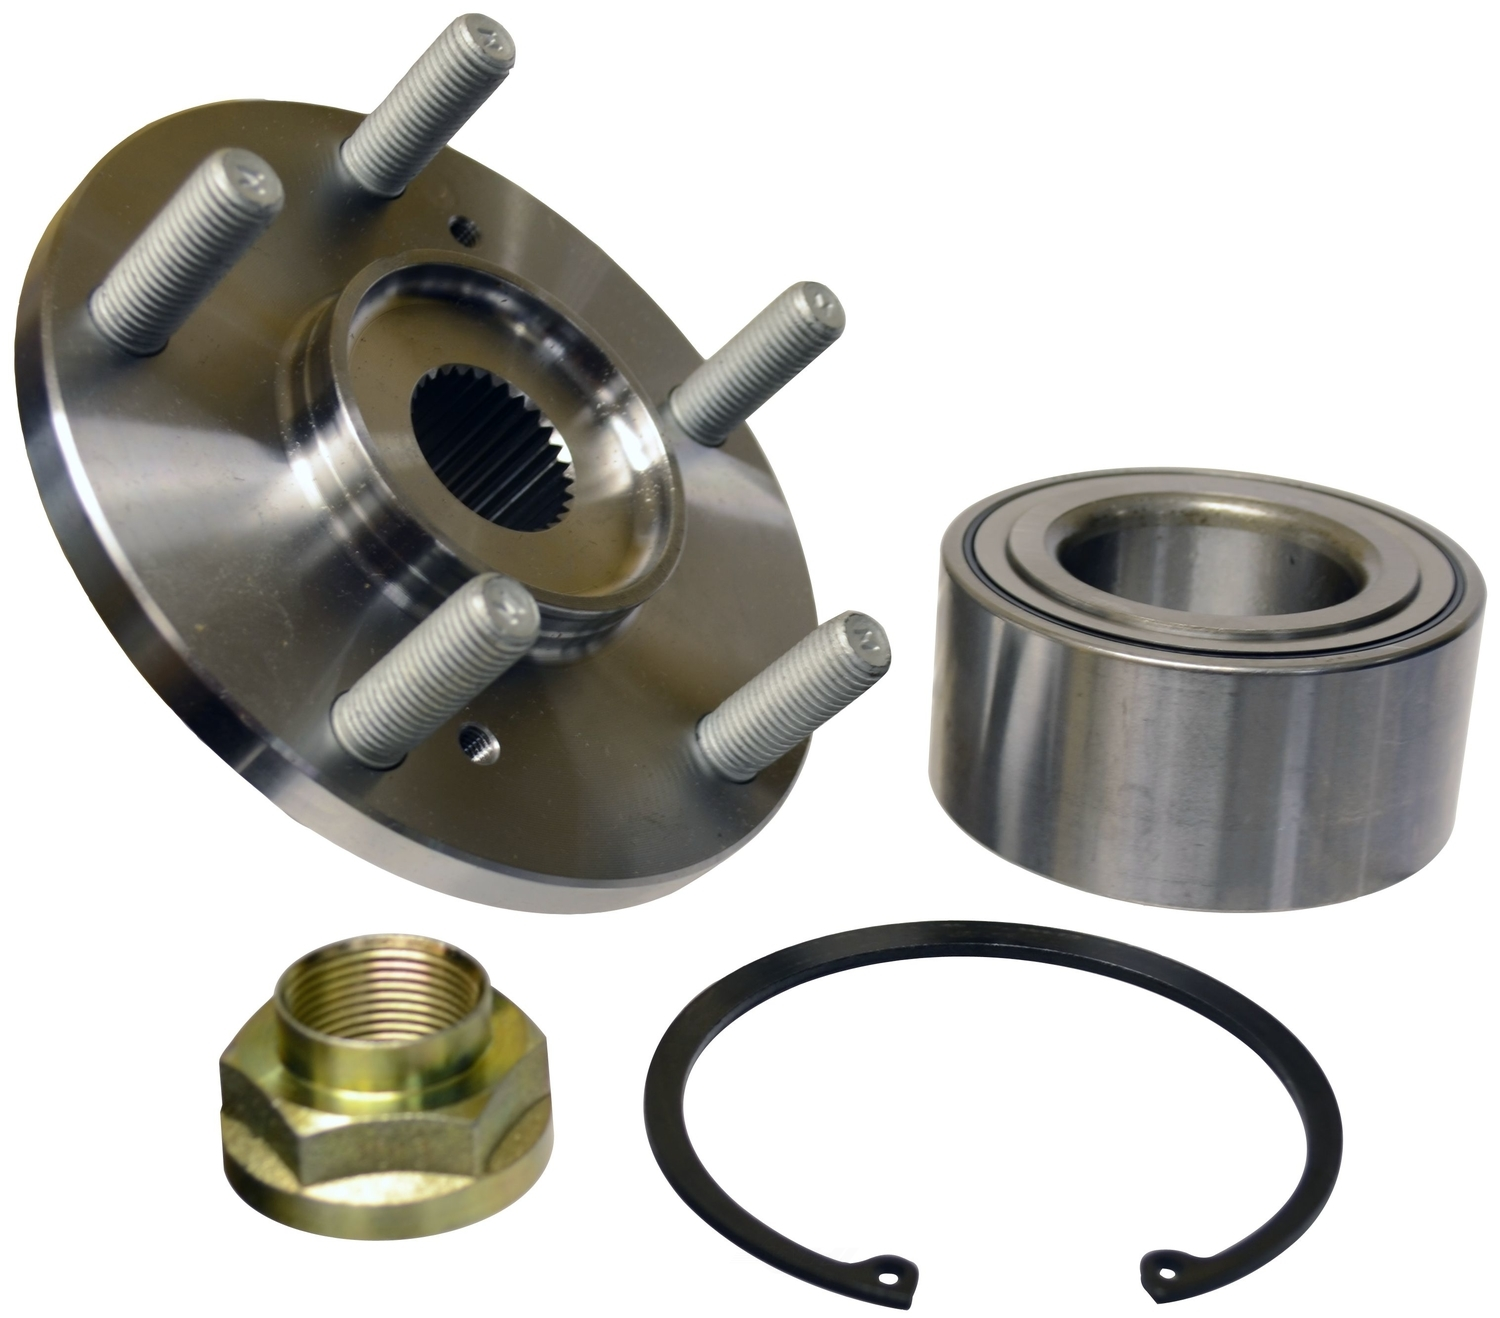 SKF (CHICAGO RAWHIDE) - Axle Bearing & Hub Assembly Repair Kit - SKF BR930590K